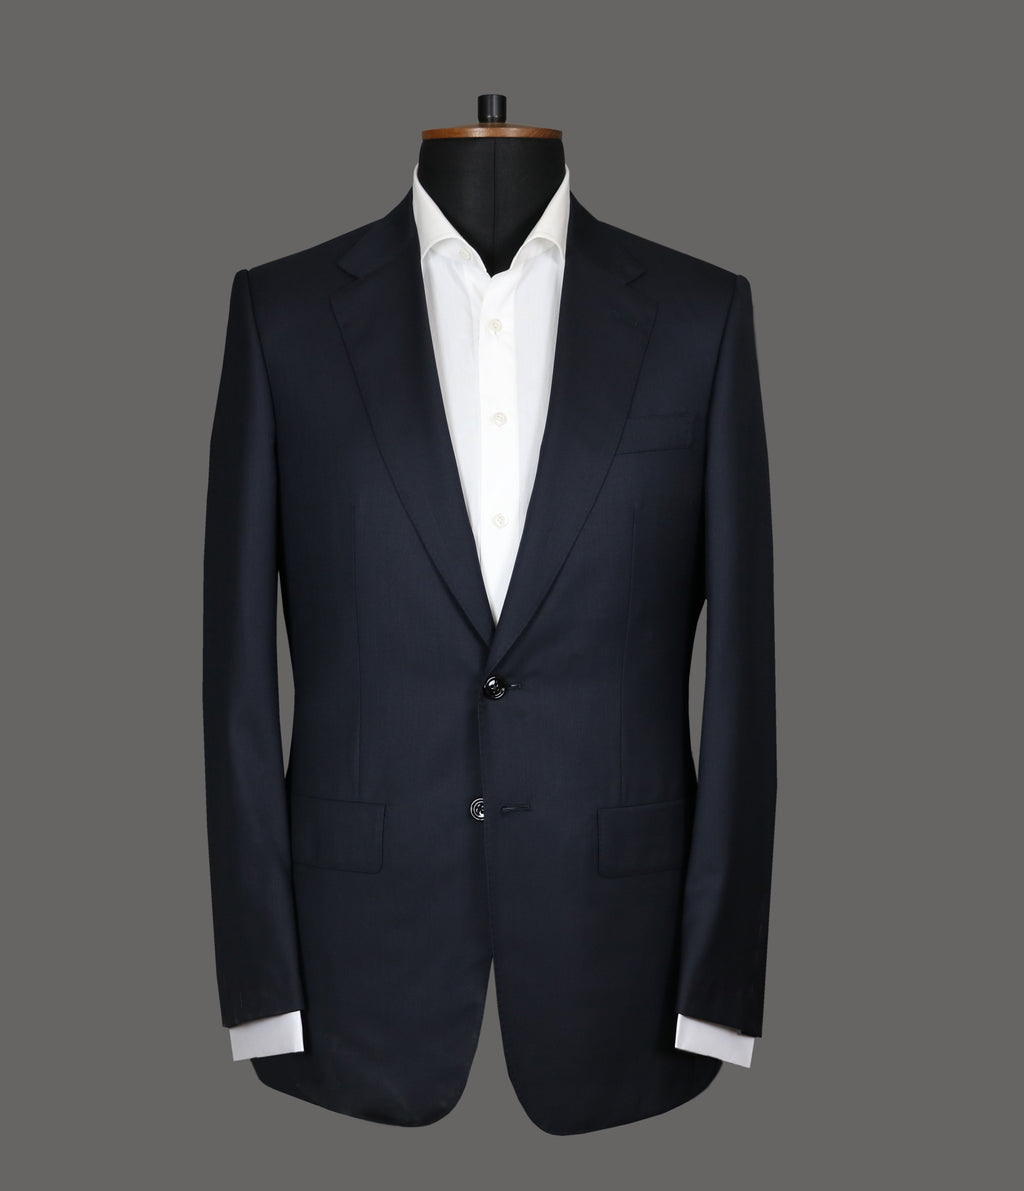 LUT028<br>Navy Suit<br>2569